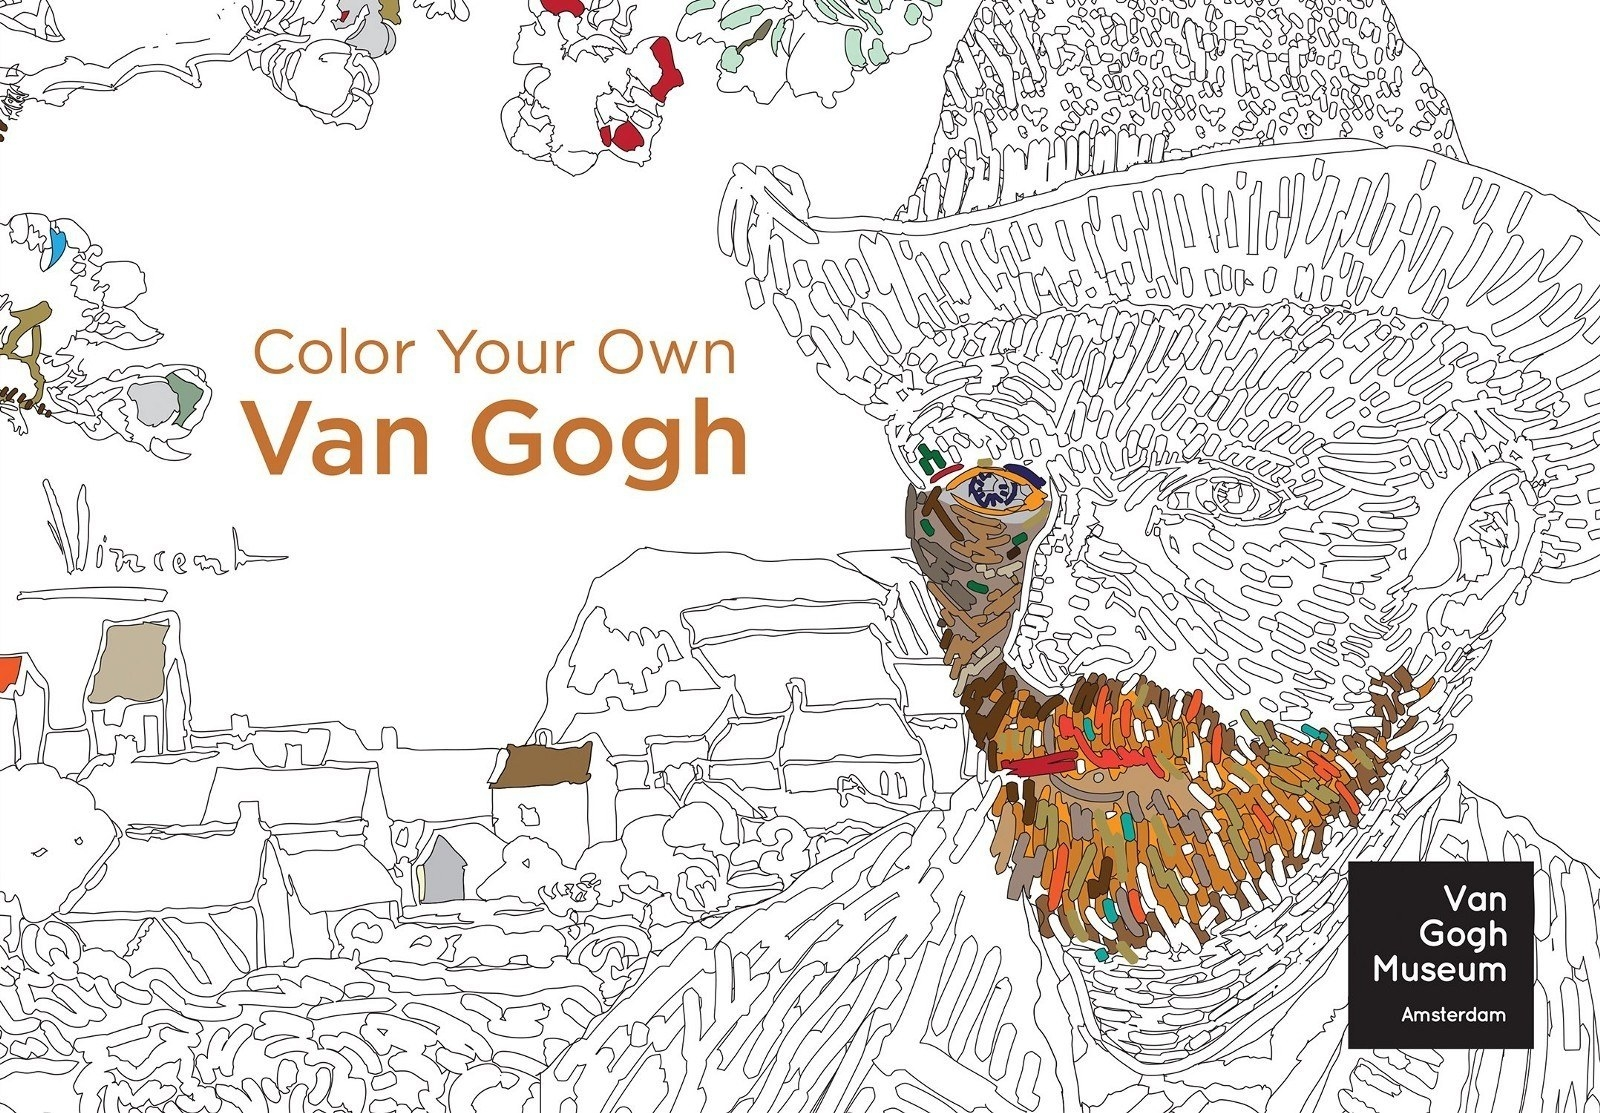 The cover of the coloring book, in the style of one of his paintings